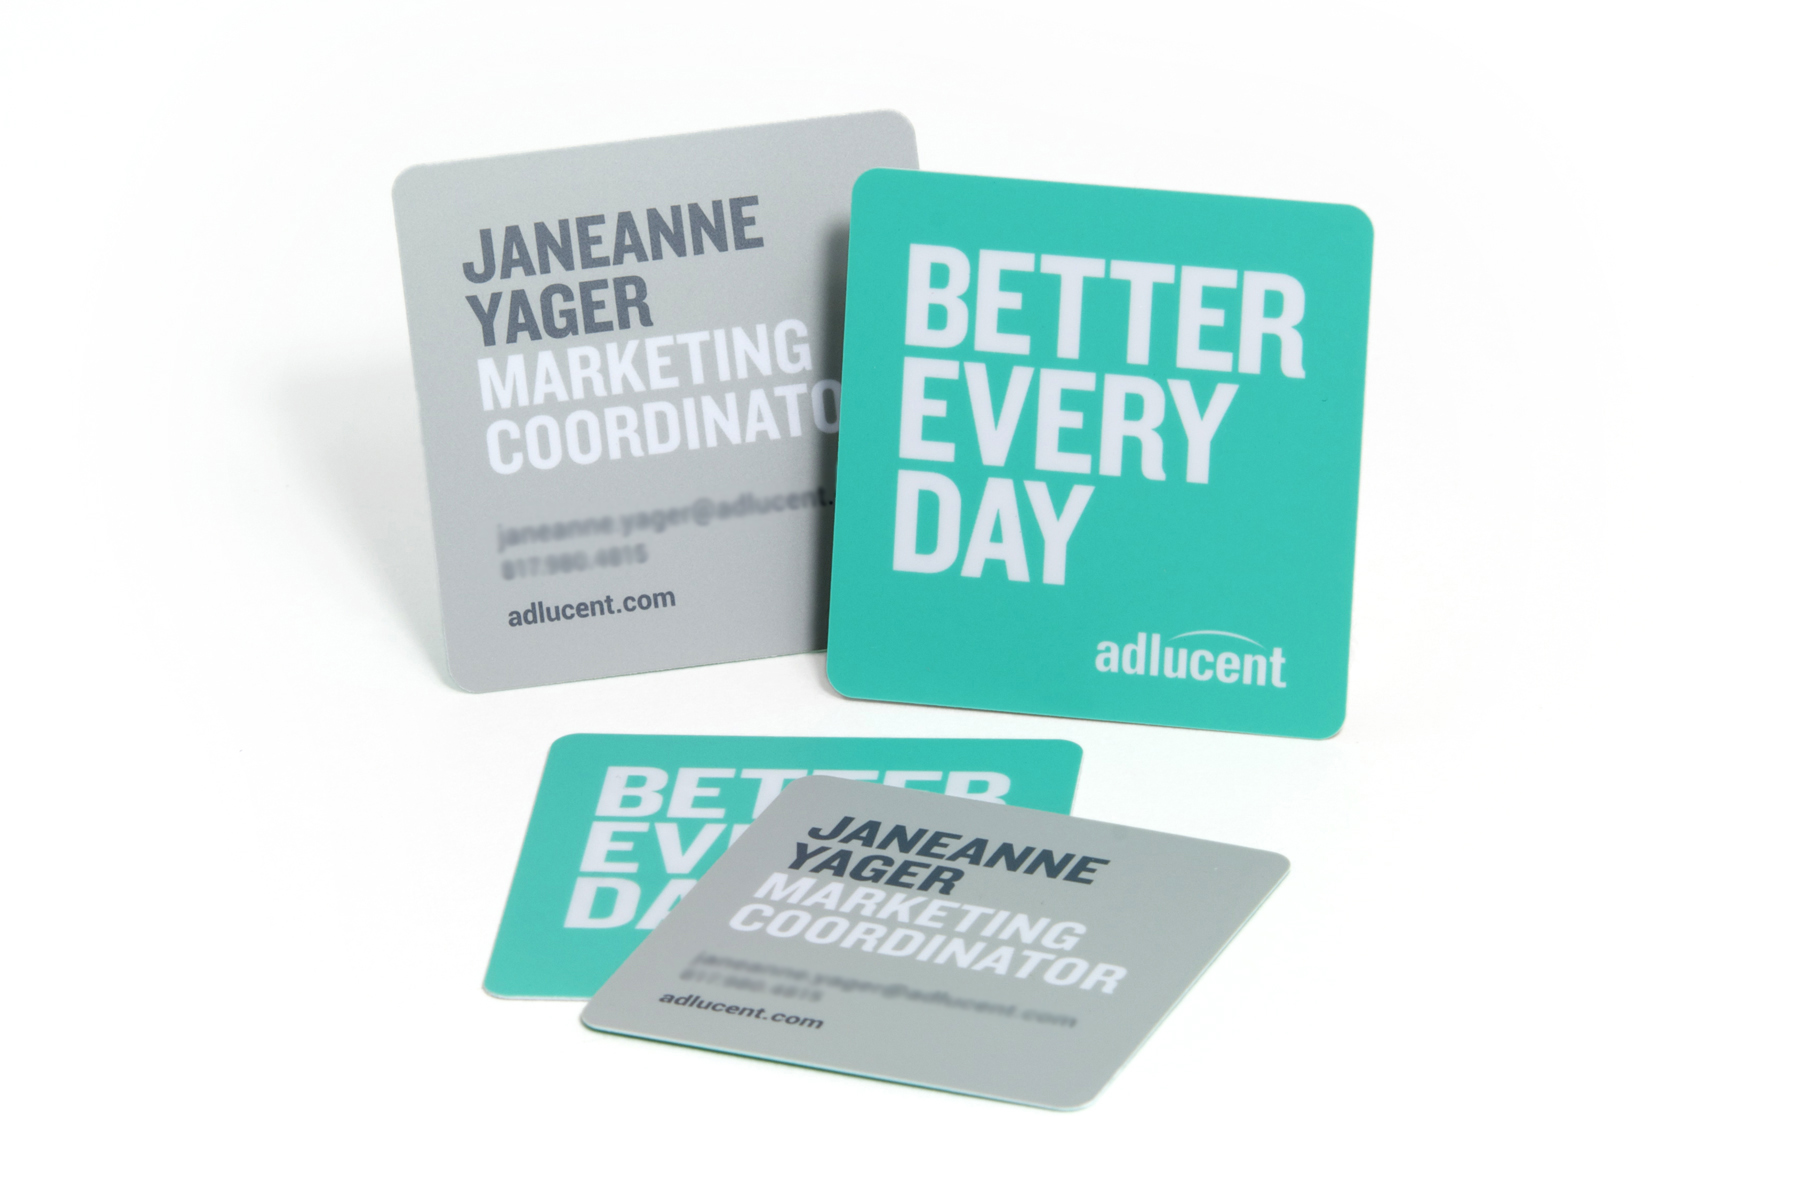 adlucent thinks outside the box with square business cards